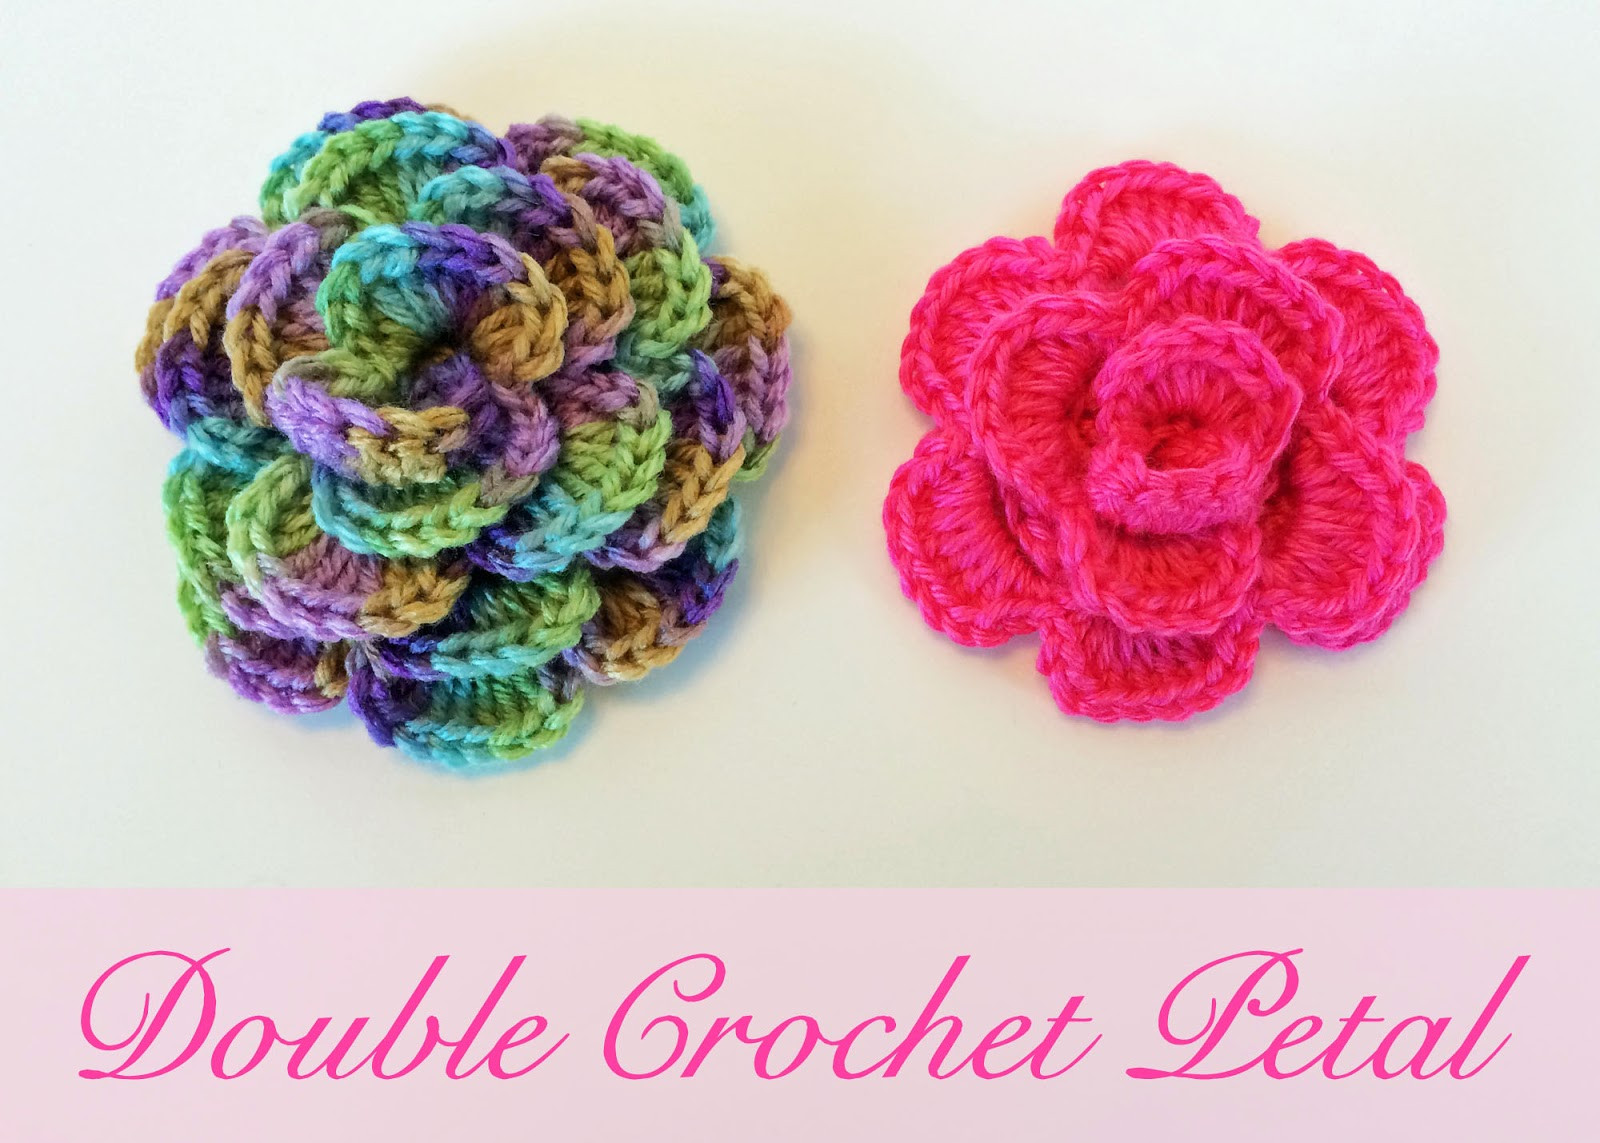 Free Crochet Flower Patterns Beautiful Crochet Rochelle Double Crochet Flower Of Amazing 42 Images Free Crochet Flower Patterns